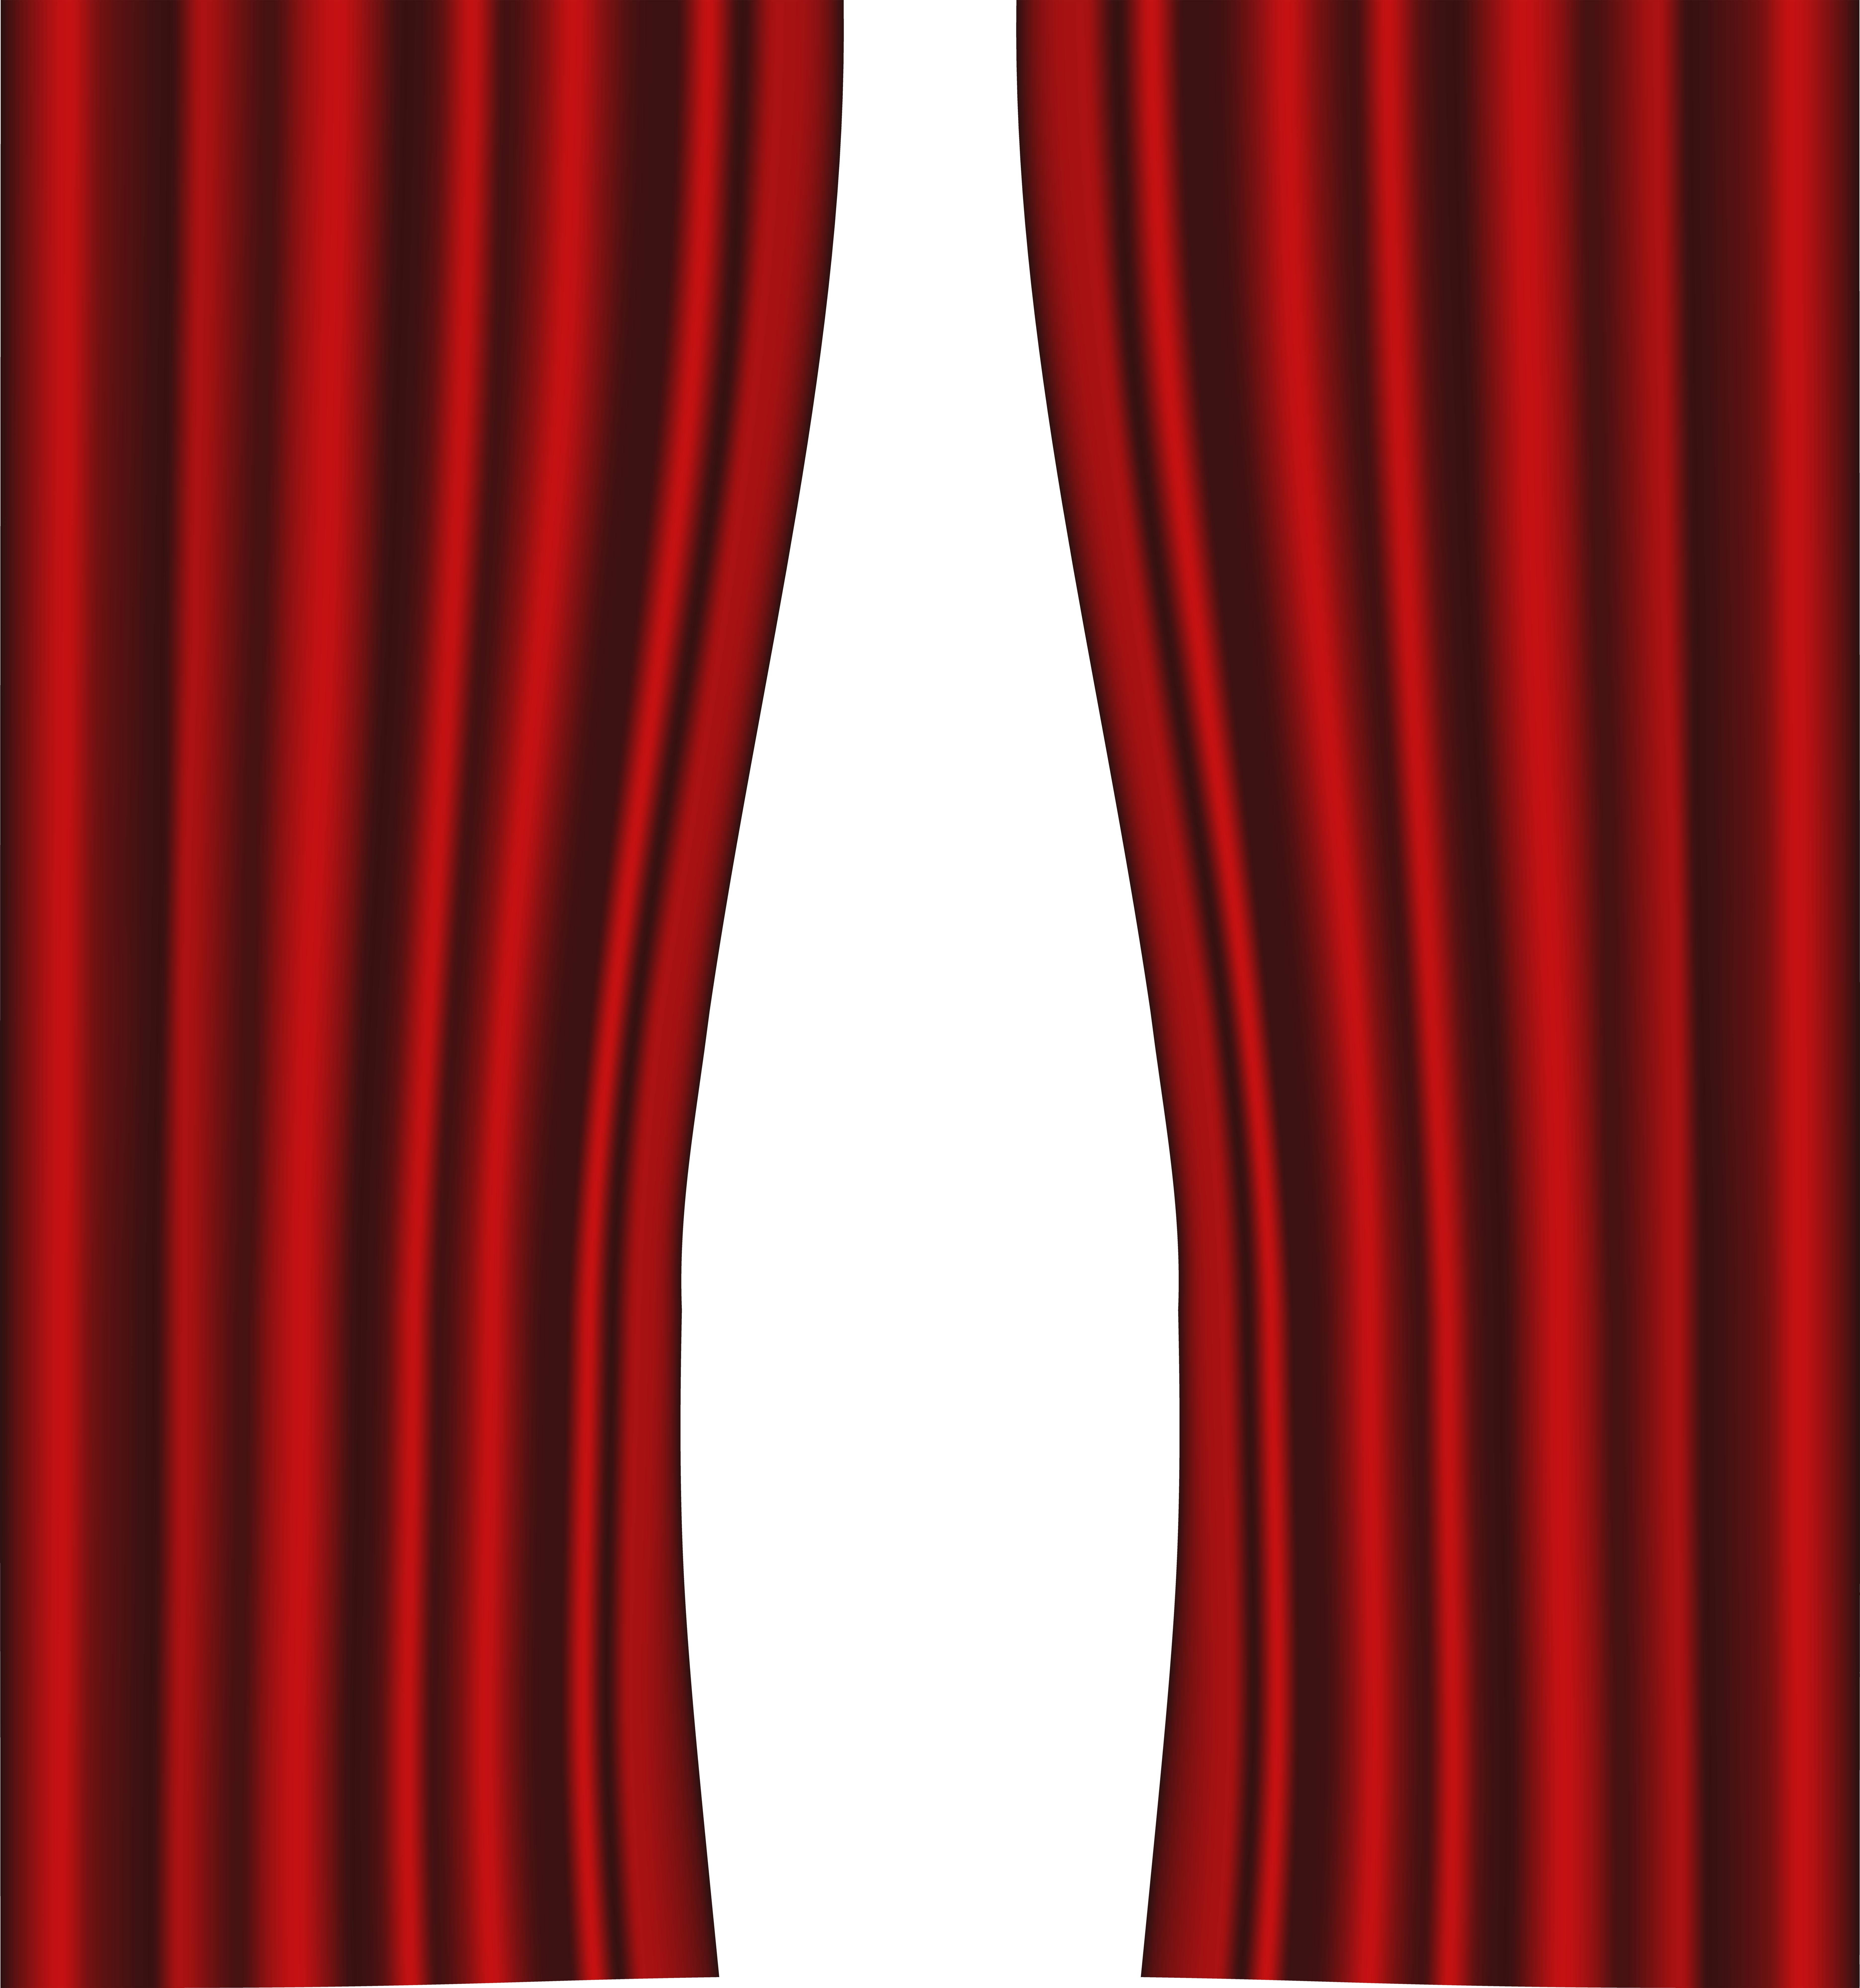 Transparent curtain png. Red curtains clip art